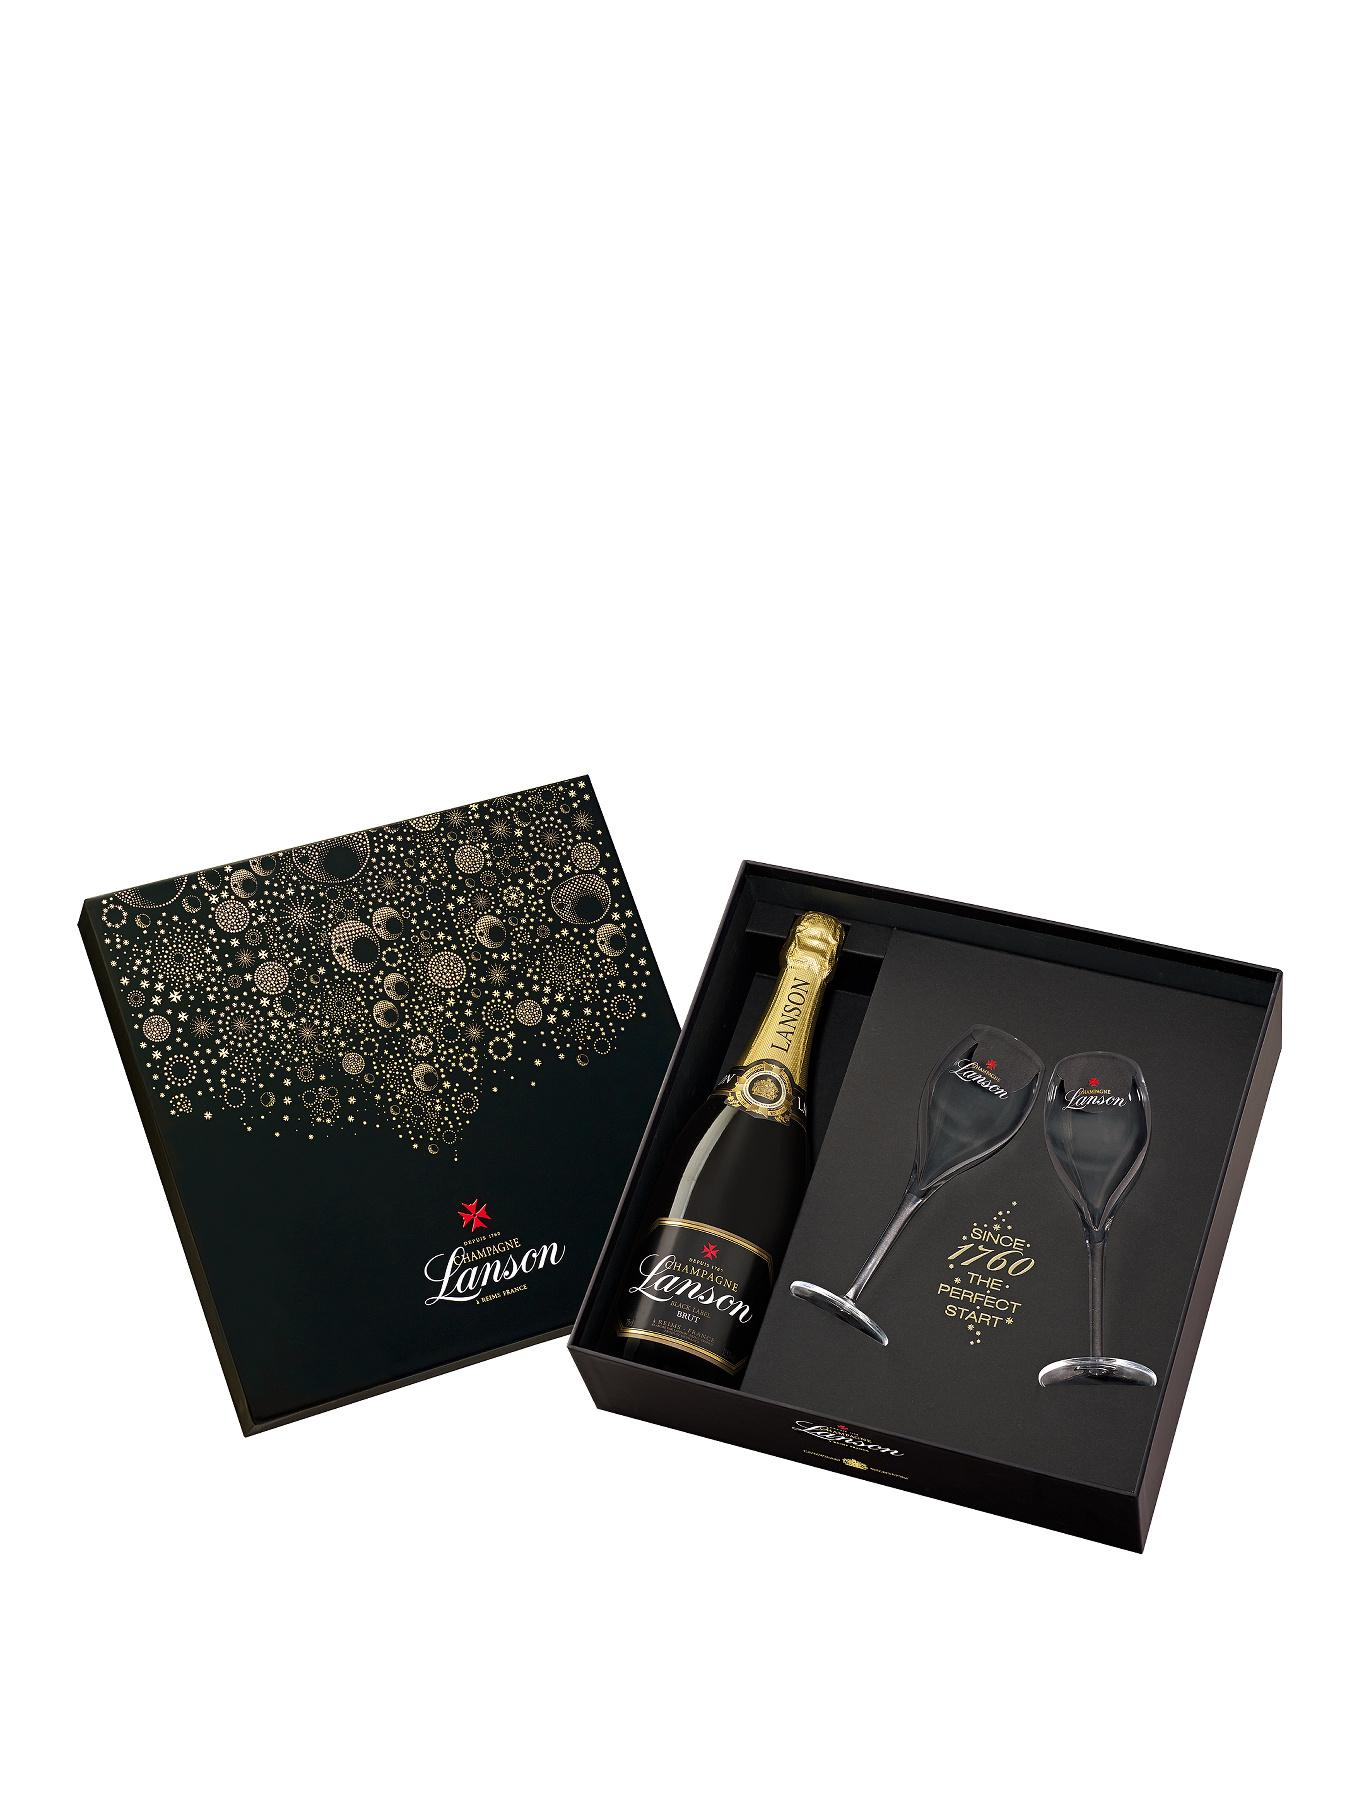 Black Label Champagne Deluxe Gift Pack with 2 Clear Champagne Flutes